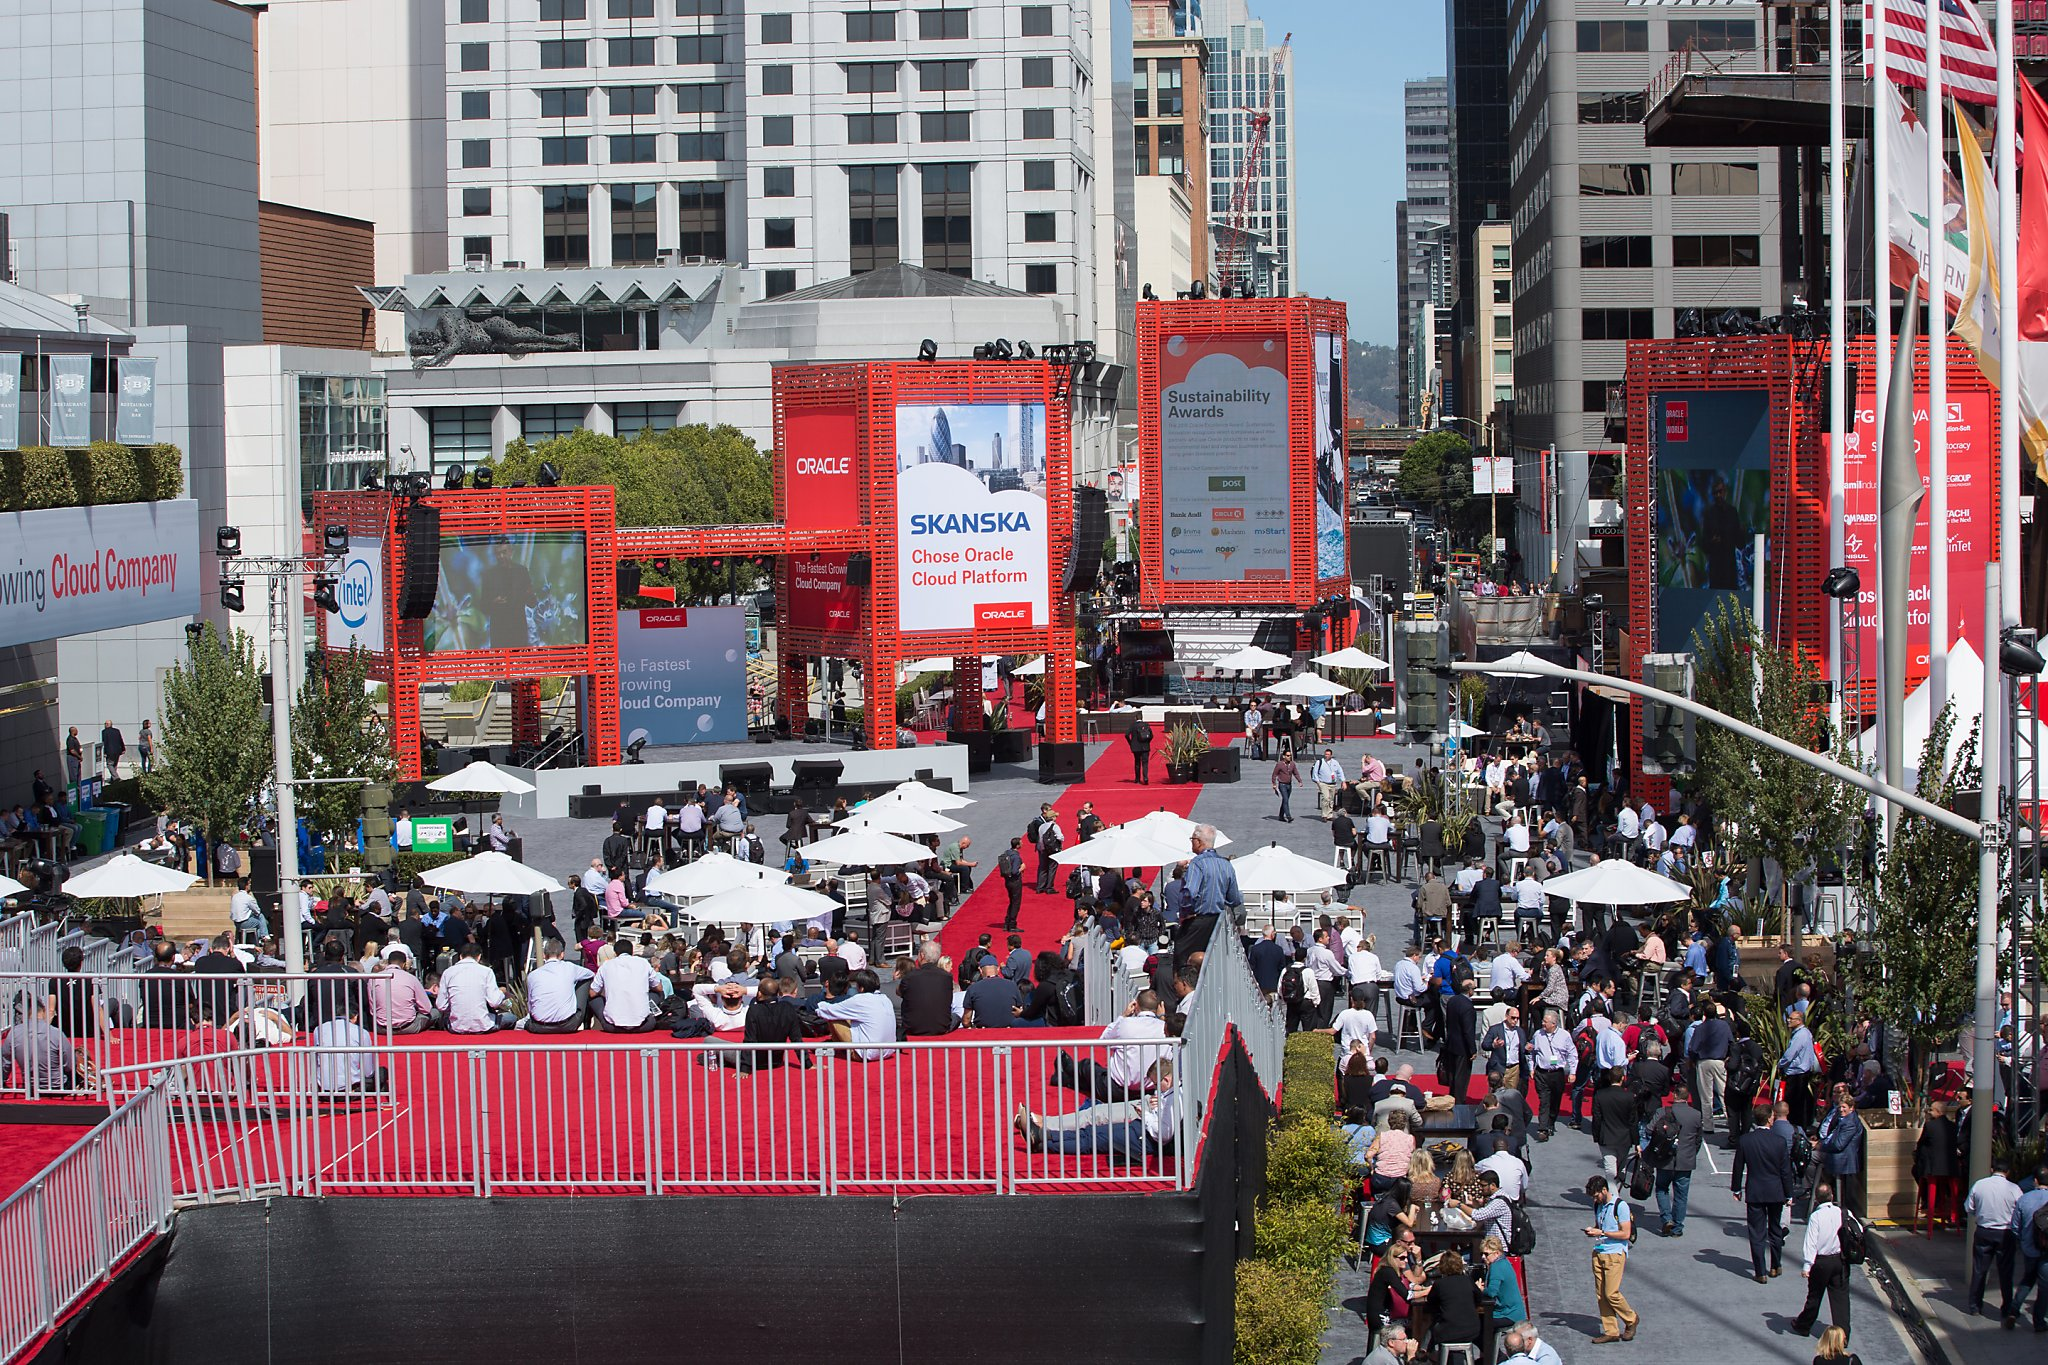 SF loses Oracle's huge OpenWorld tech conference to Las Vegas